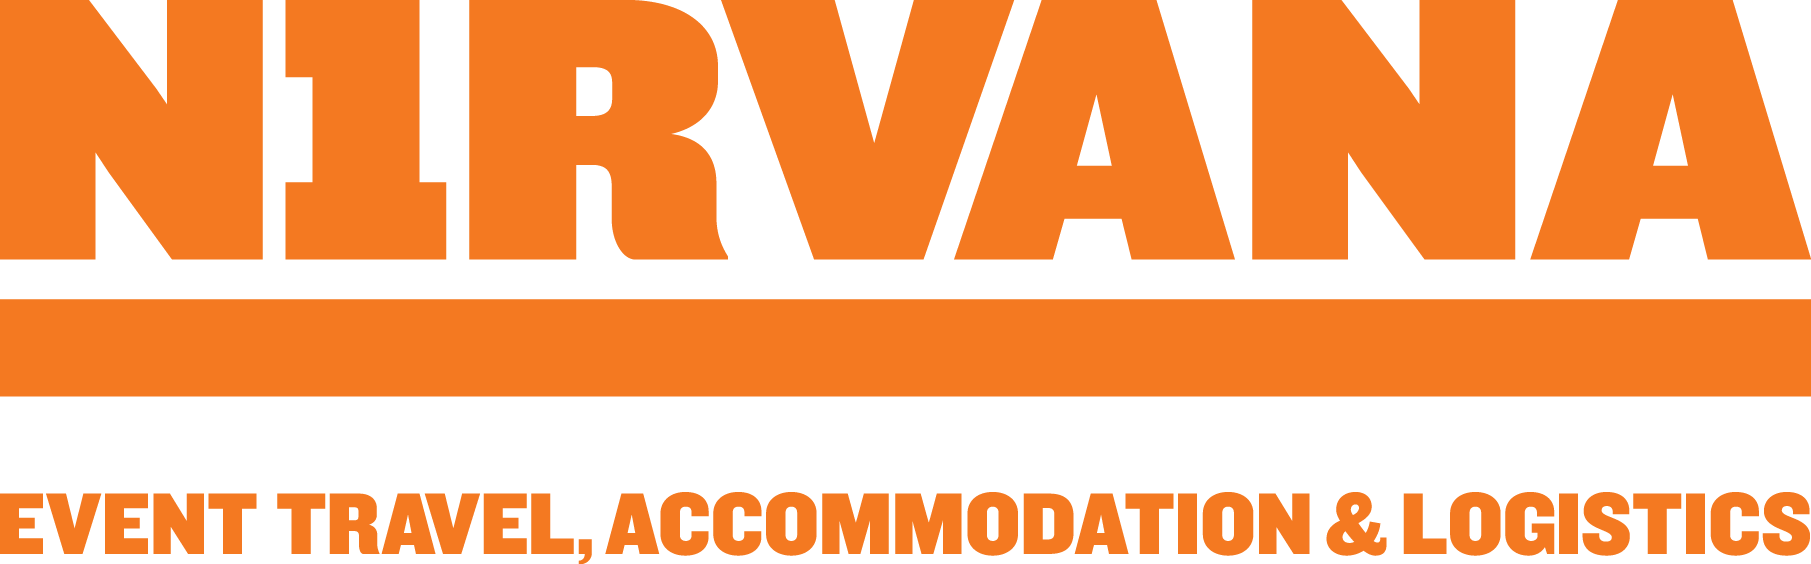 Logo Nirvana Event Travel, Accommodation e Logistica